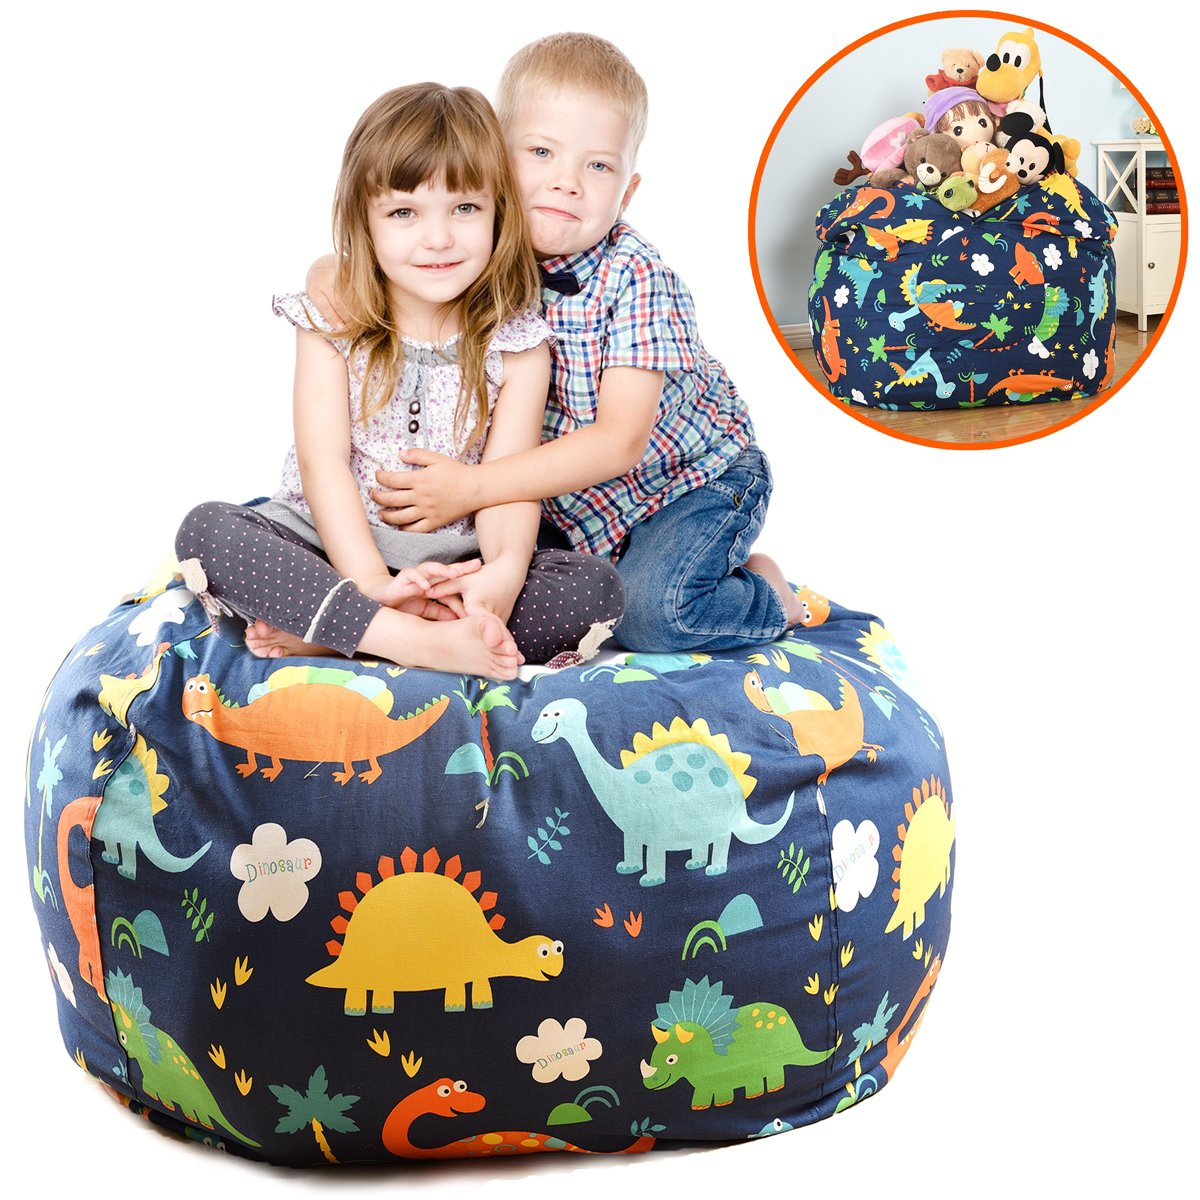 EXTRA LARGE 38'' Stuffed Animals Bean Bag Chair Cover-100% ...